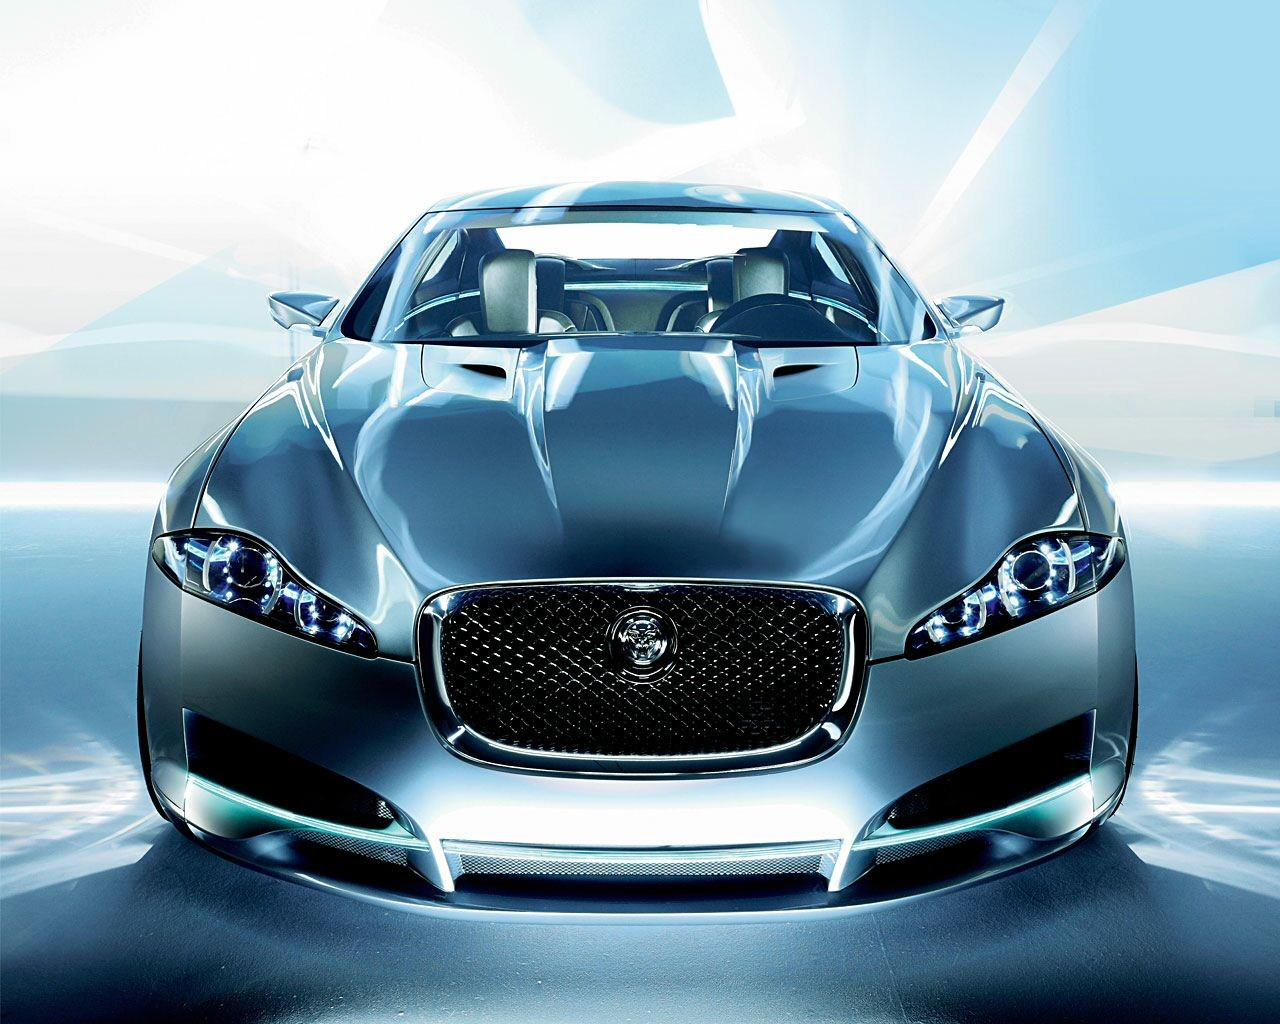 Our car brands luxury auto blog Uploading high quality HD Maxximus LNG 1280x1024